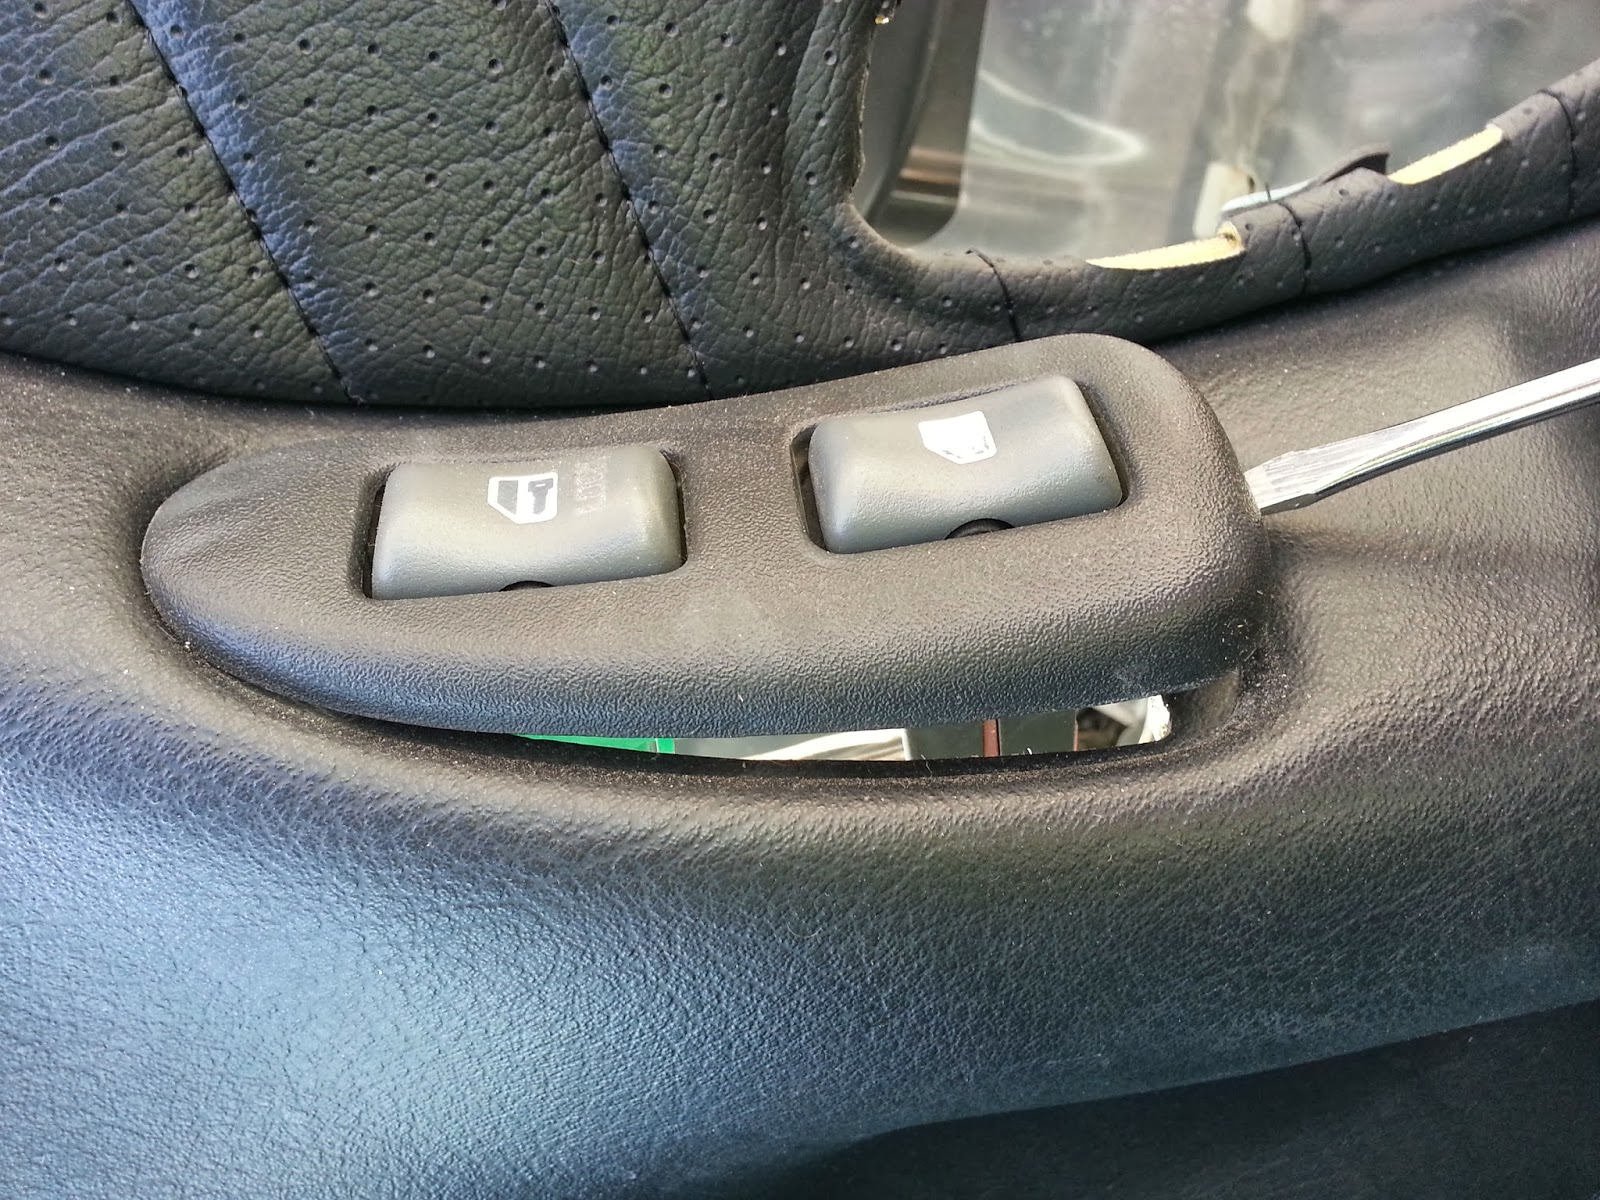 Switch Wiring Diagram For A 2003 Olds Alero Also 2003 Oldsmobile Alero